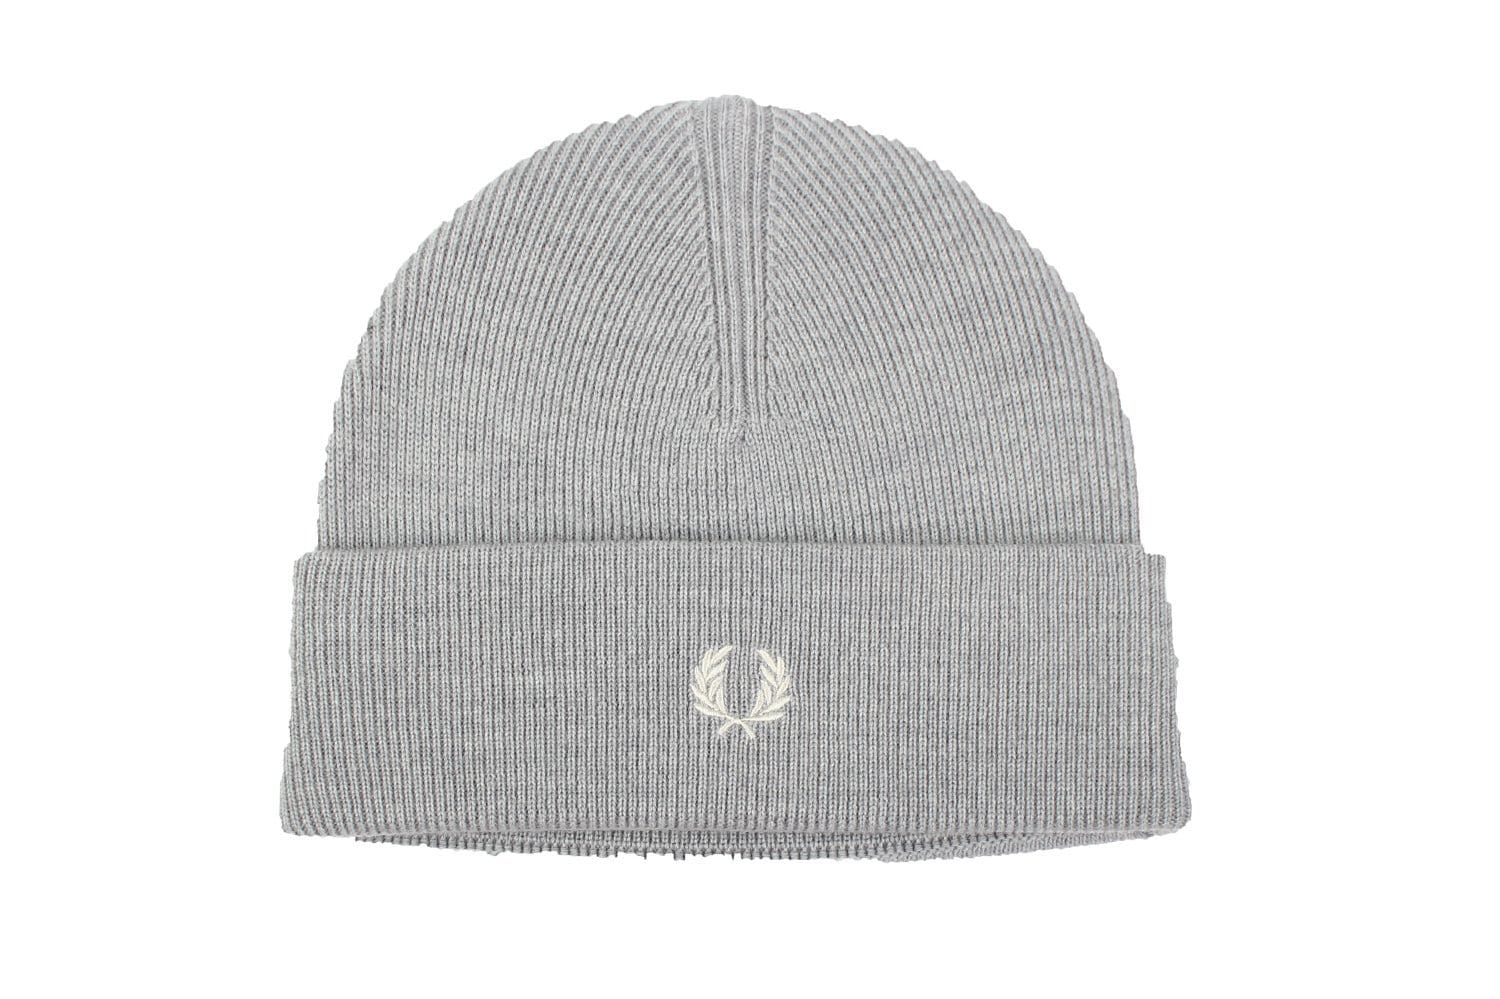 MERINO WOOL HATS FRED PERRY